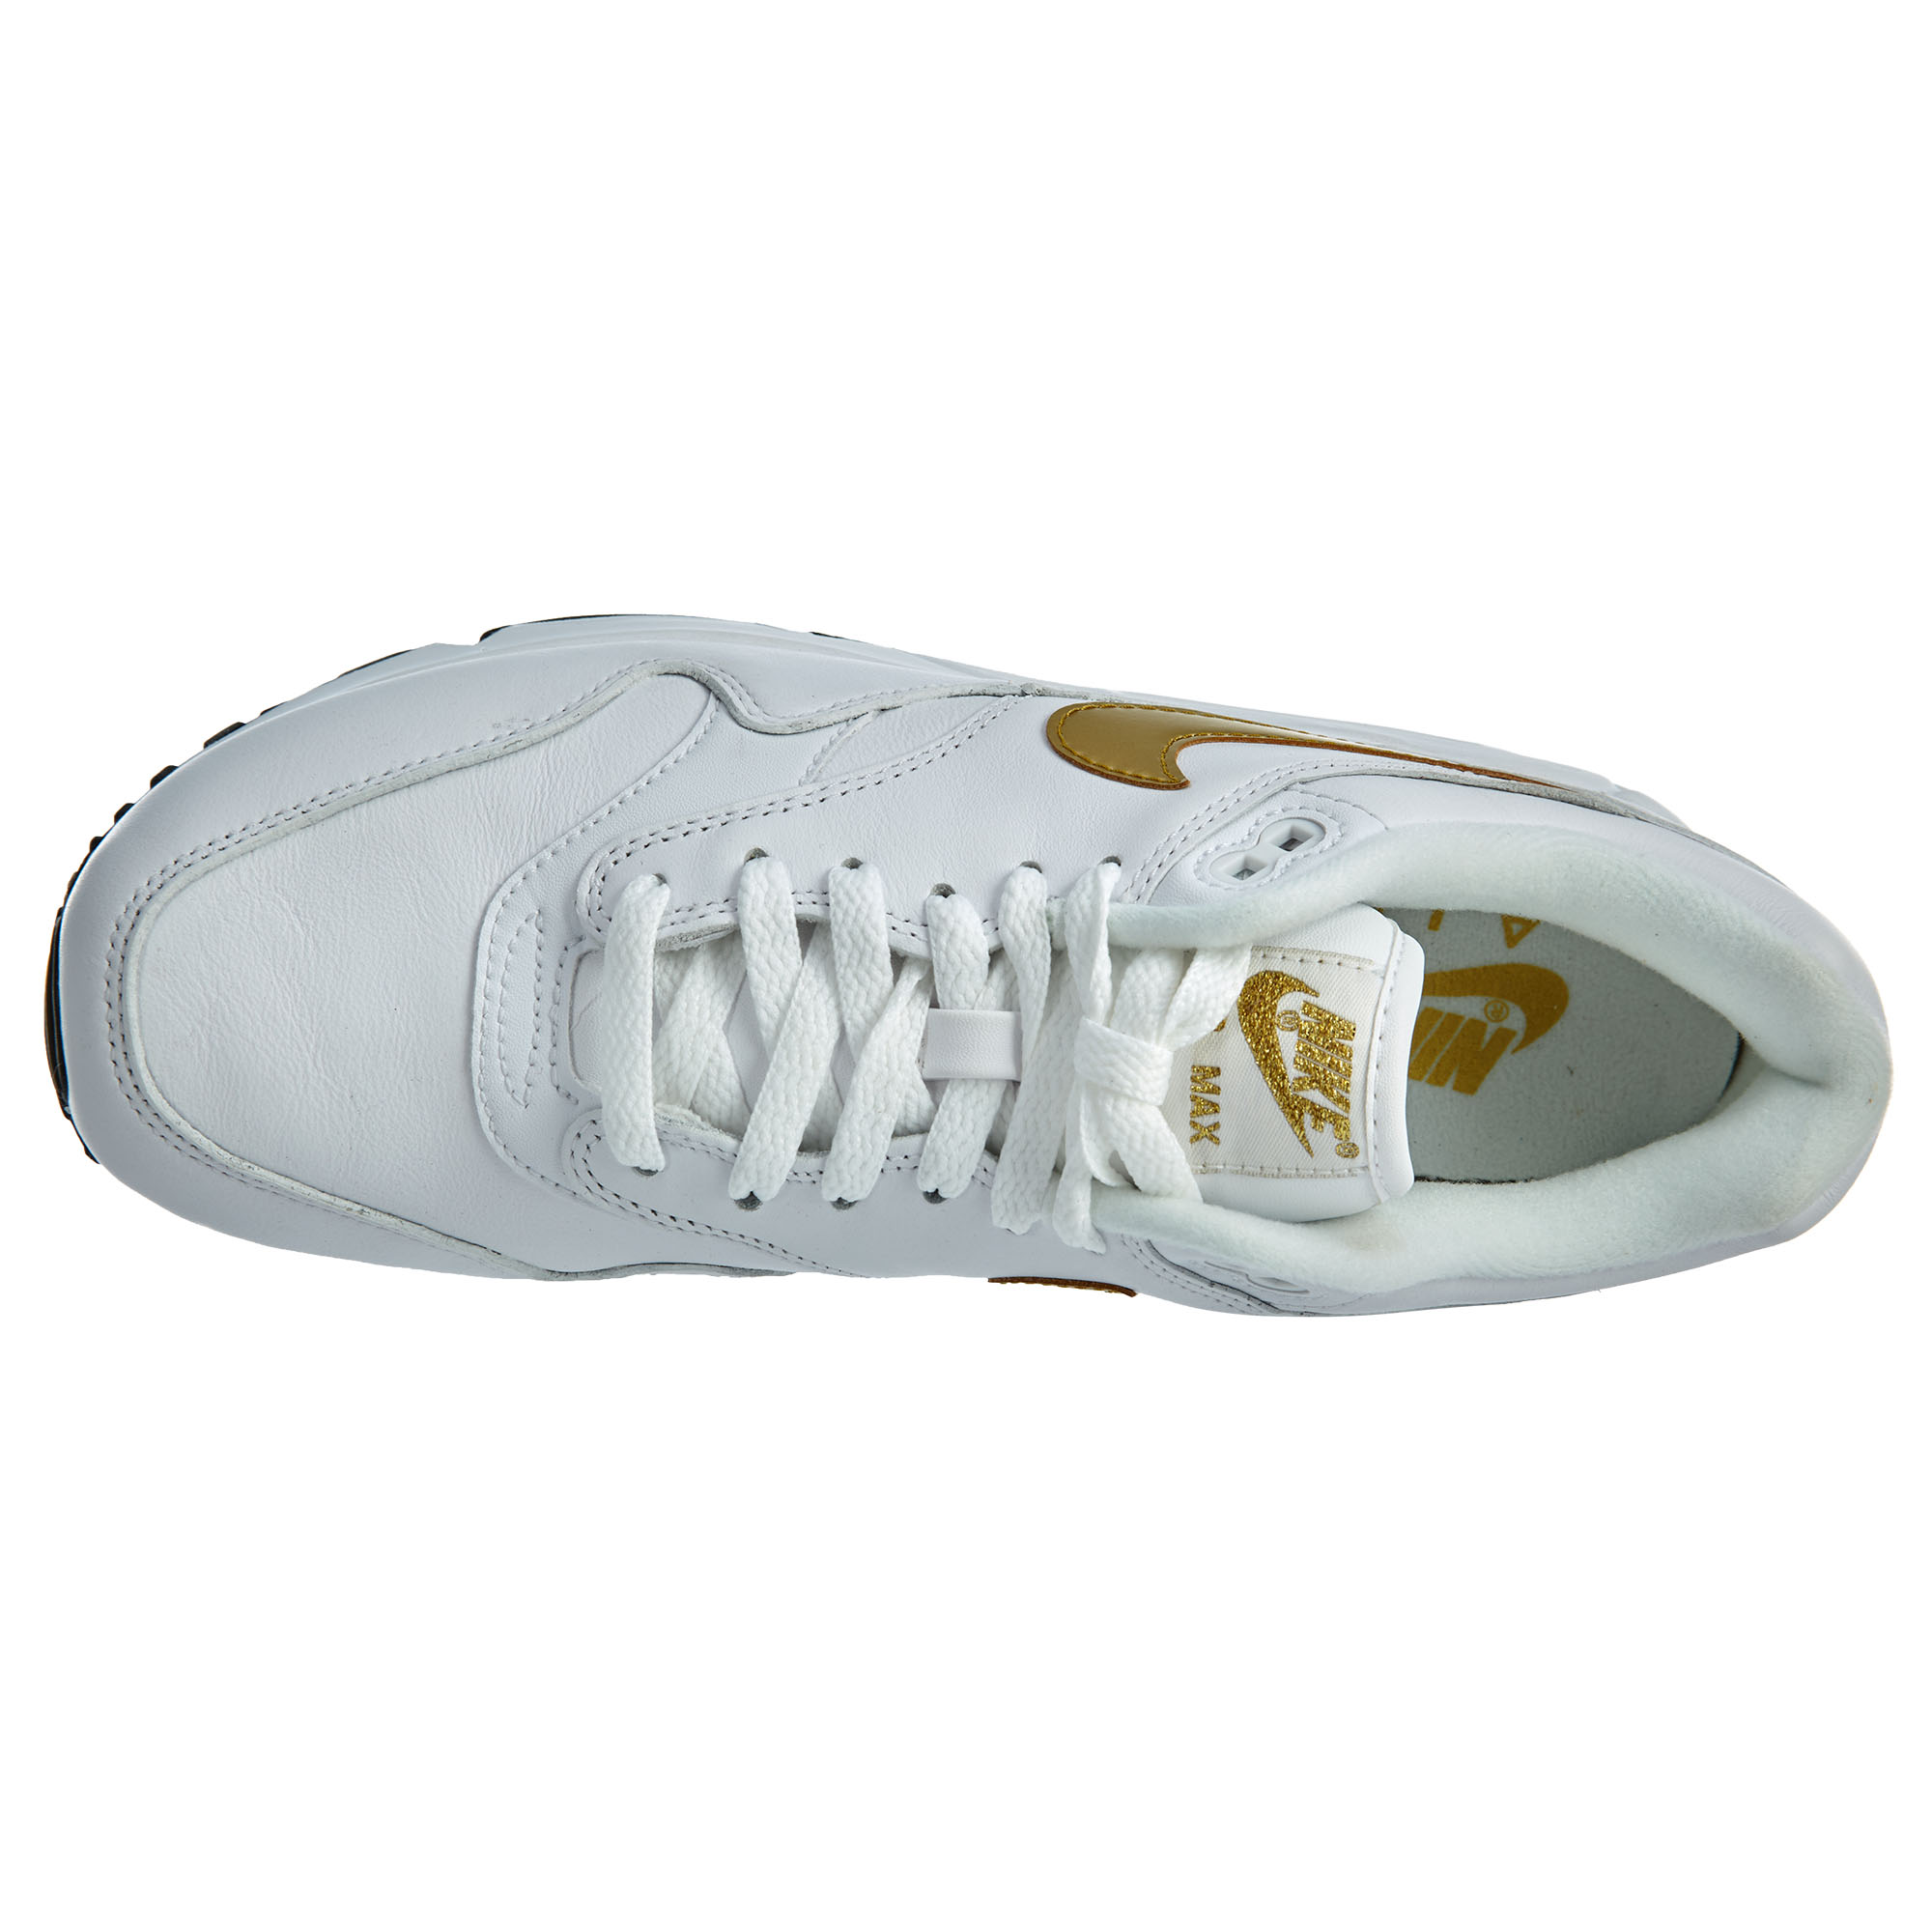 b7dde78b60 Nike Mens Air Max 90/1 Running Shoes. Item Description. Brand: Nike.  Condition: New with box. Color: White/Metallic Gold/Black